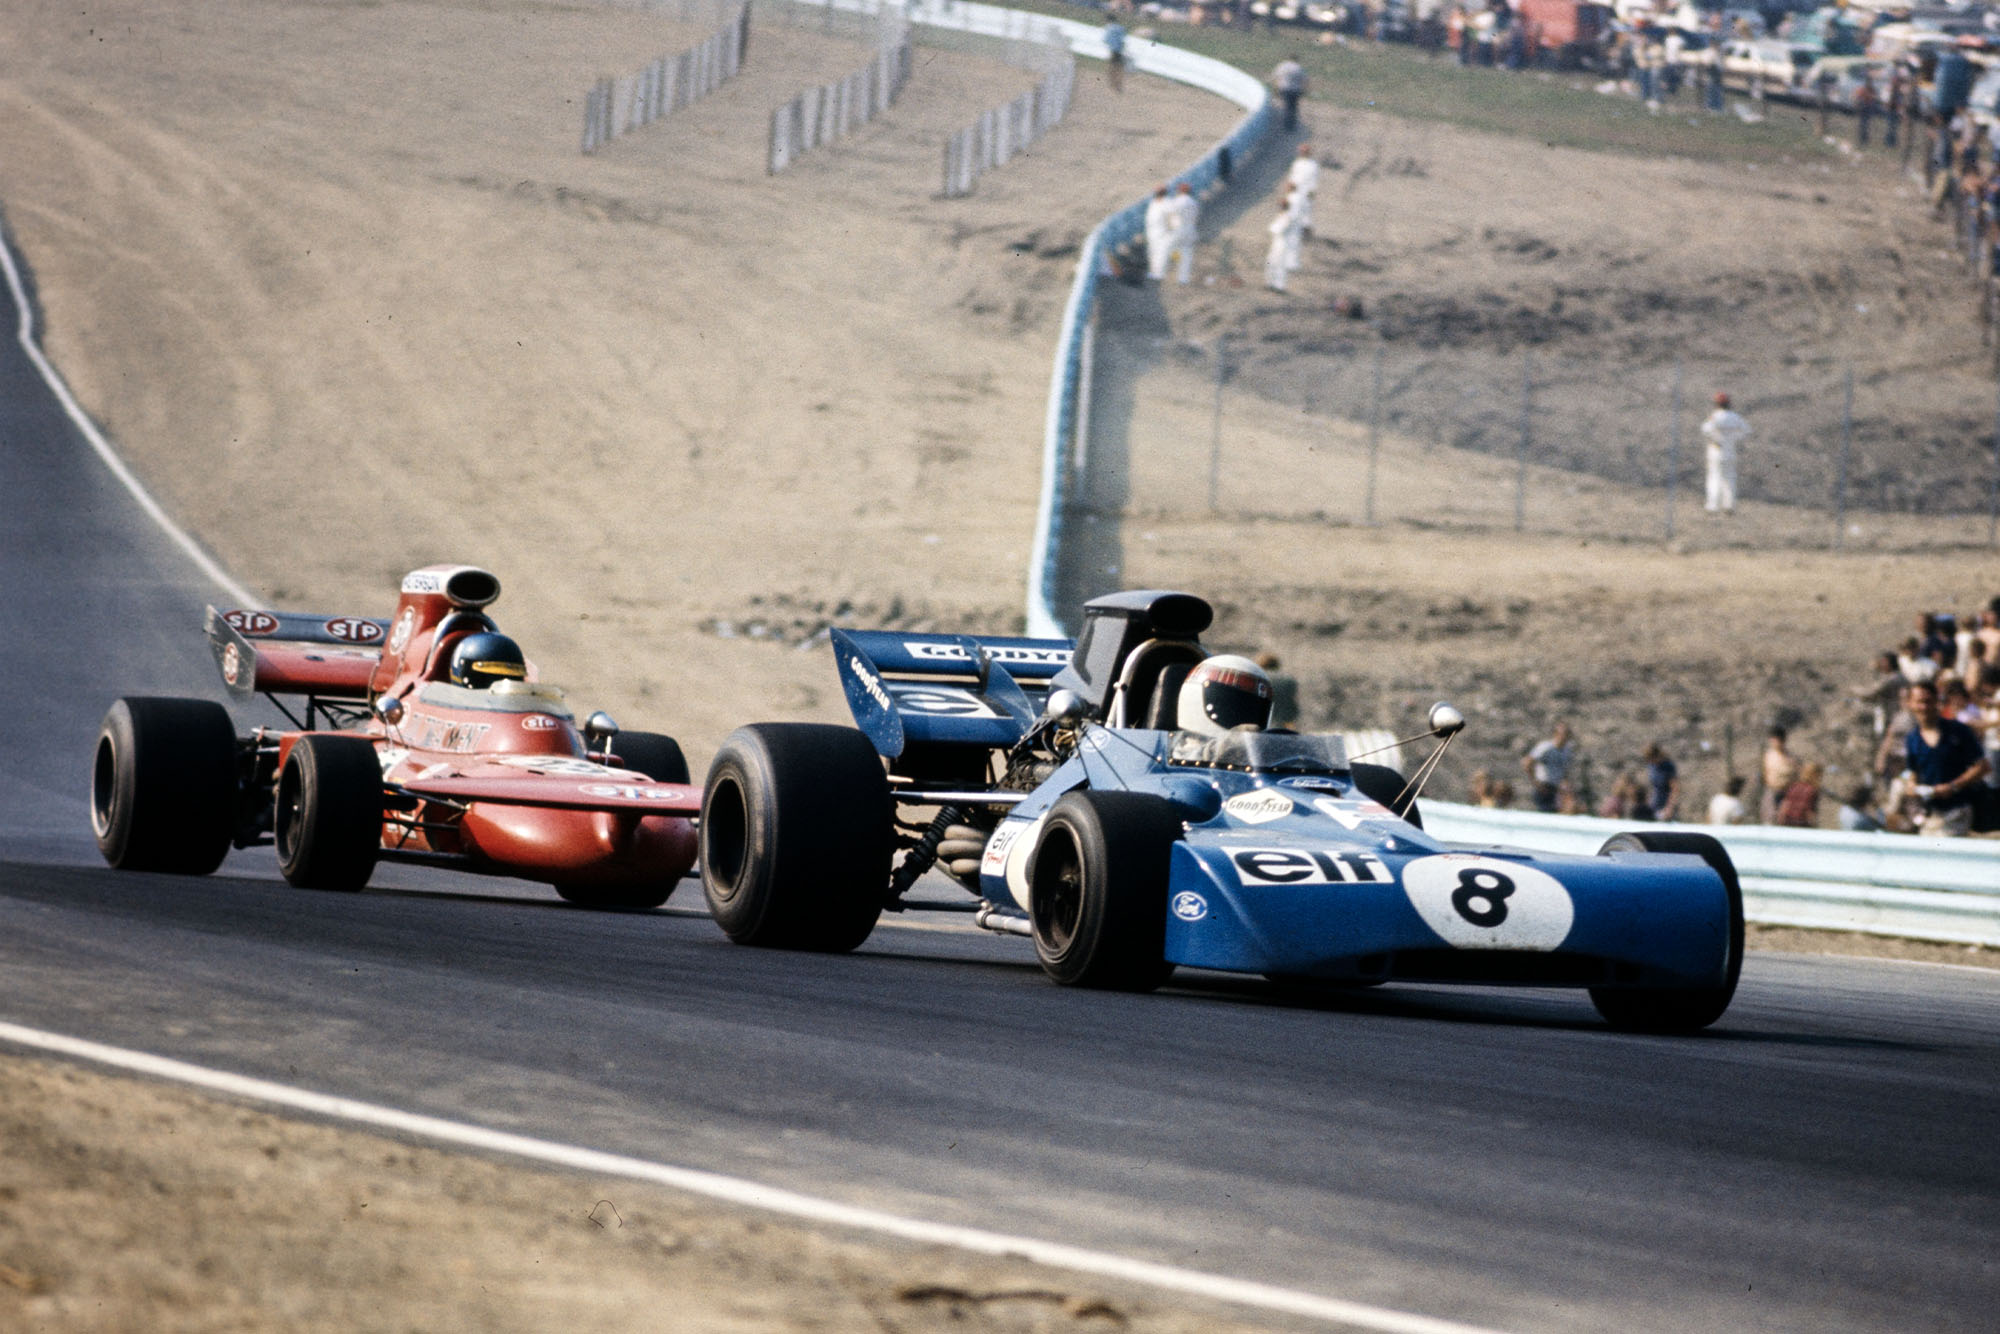 Jackie Stewart (Tyrrell) battles with Ronnie Peterson (March) at the 1971 United States Grand Prix.